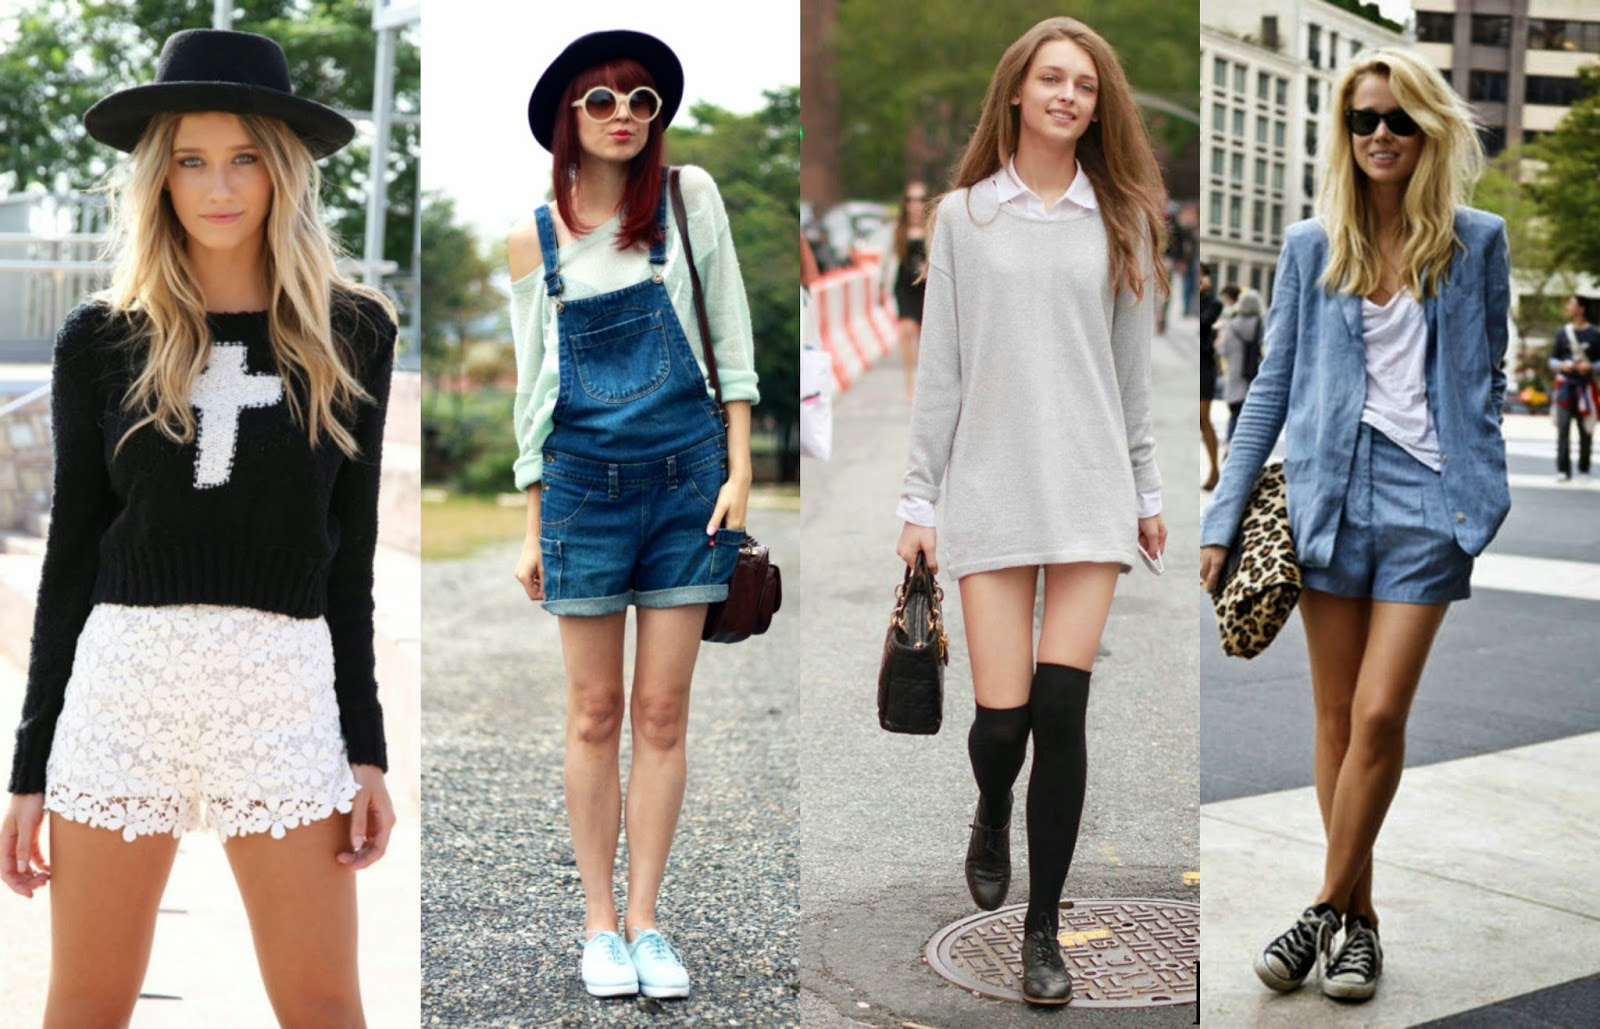 How to be fashionista